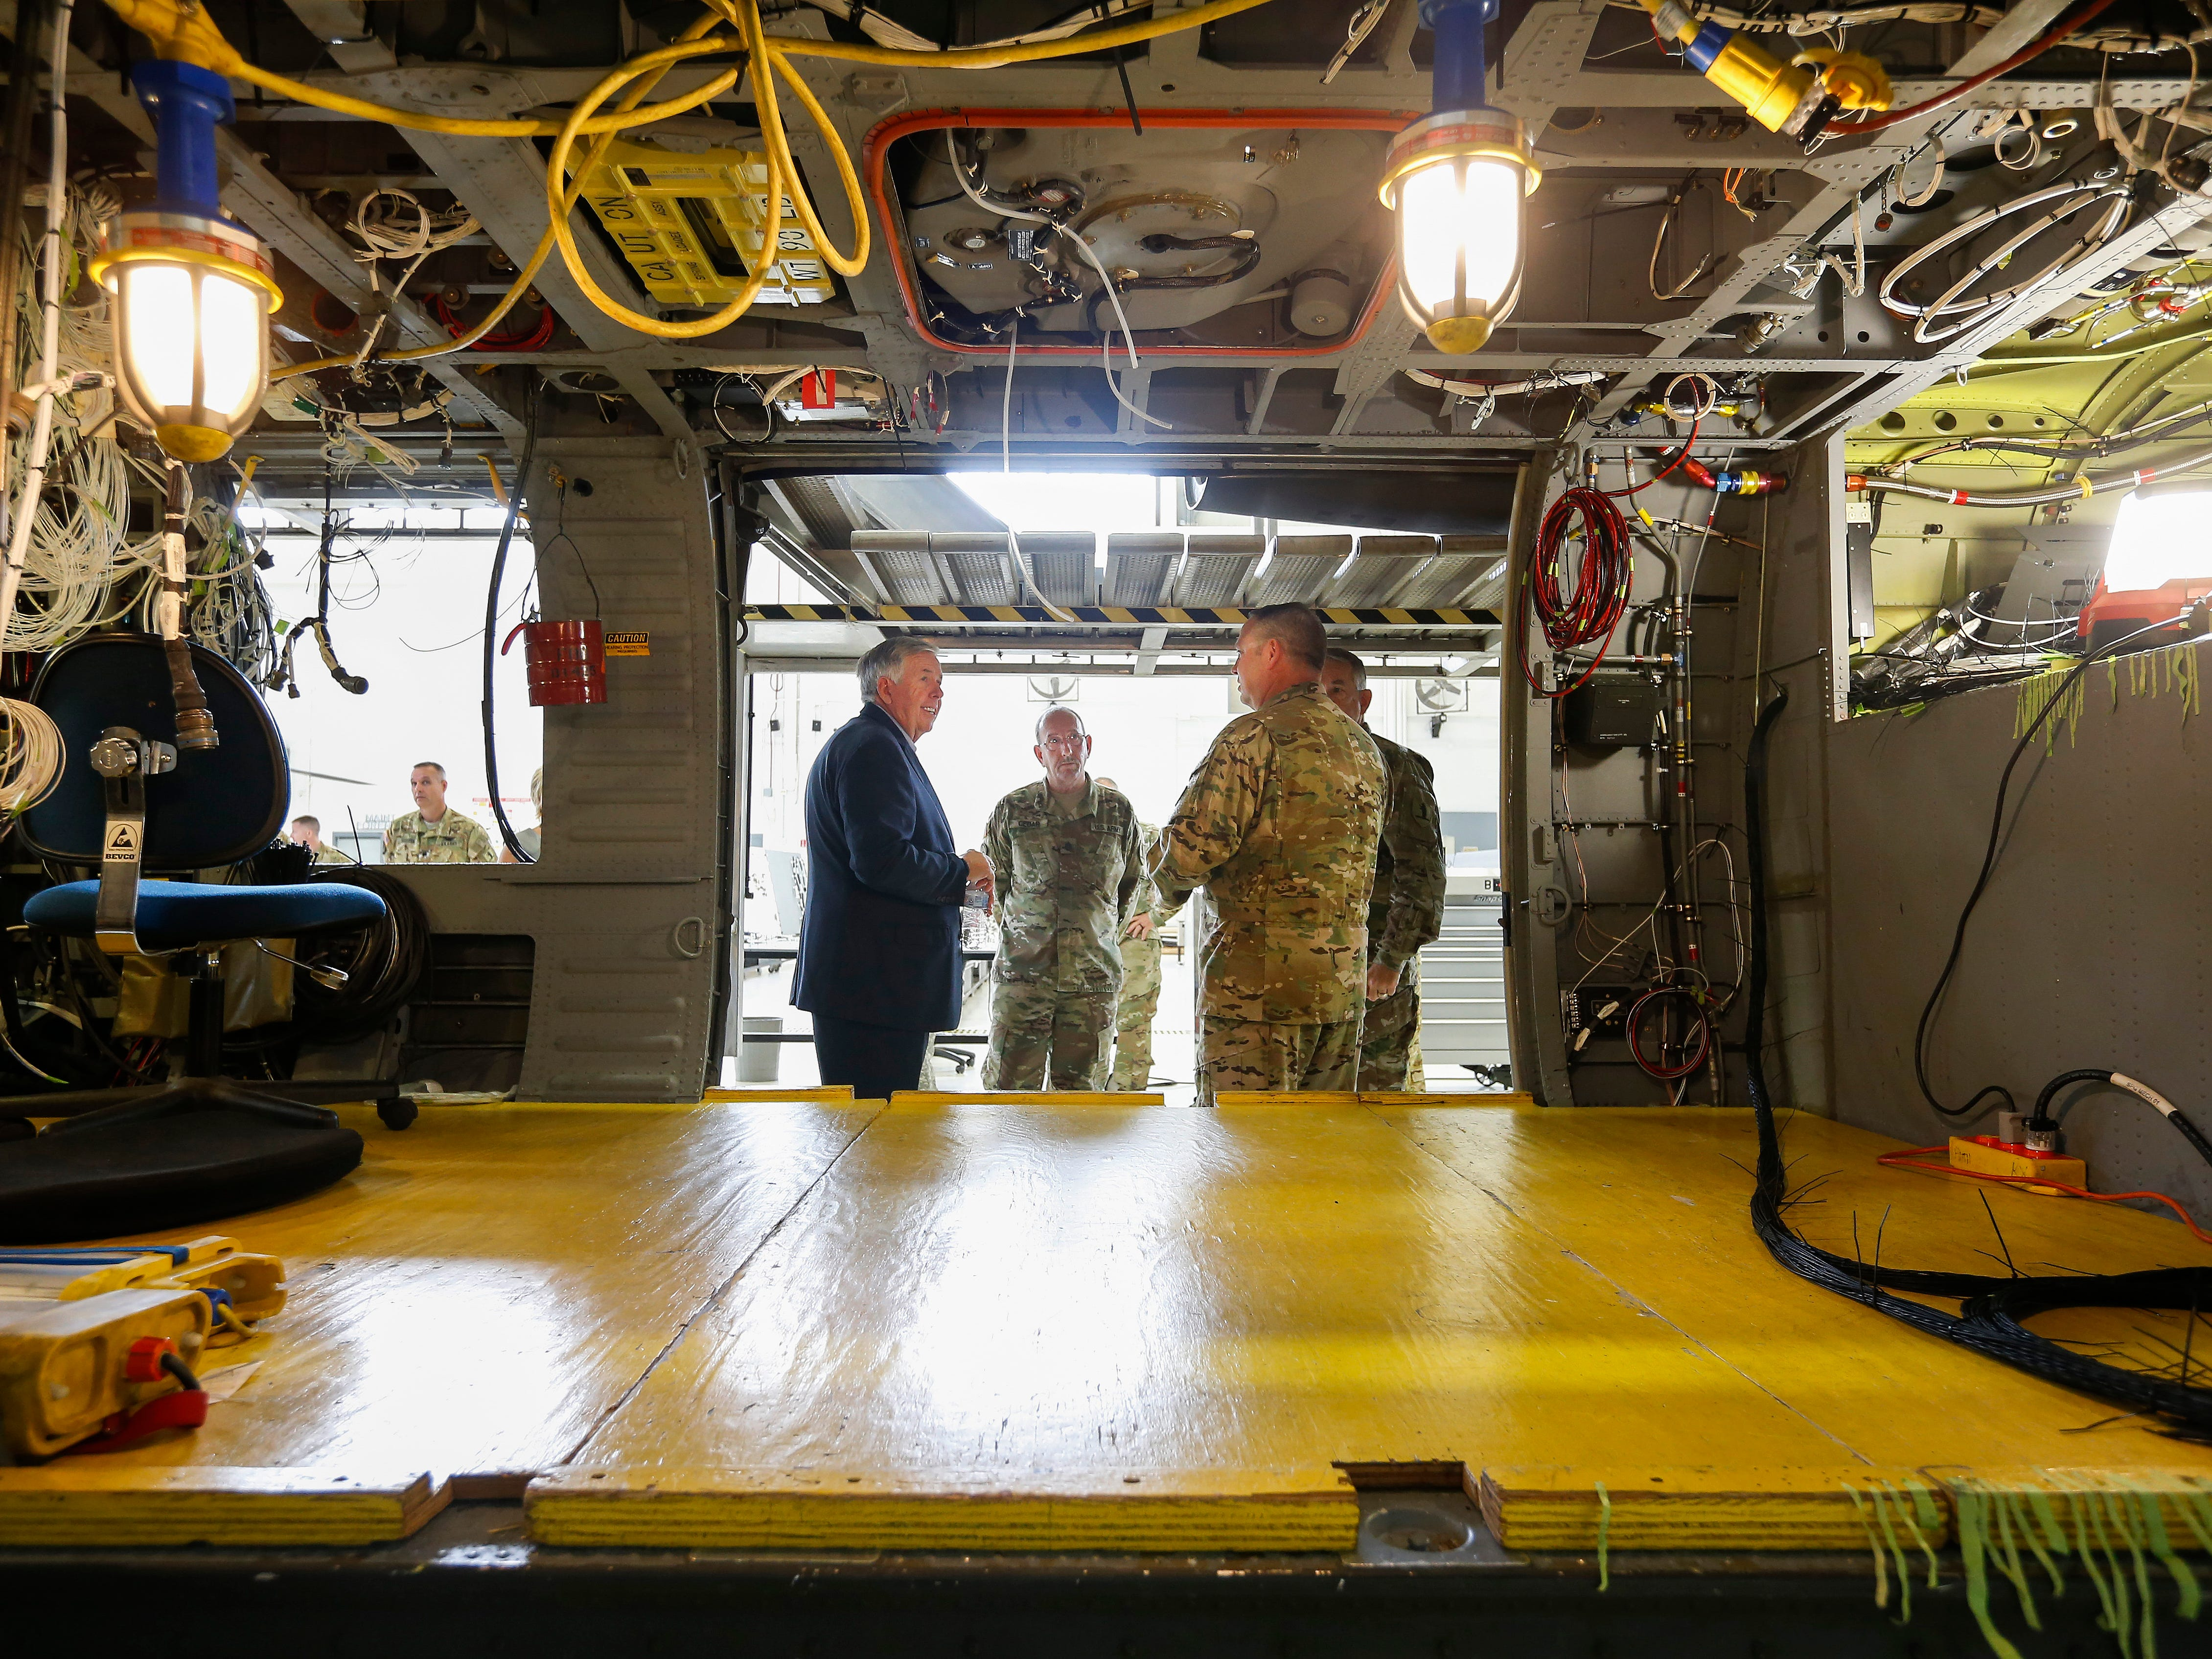 Gov. Mike Parson tours The Missouri National Guard Aviation Classification Repair Activity Depot on Wednesday, Aug. 1, 2018. Gov. Parson met with soldiers and toured the facility ahead of delivering his state of the state address in Springfield.